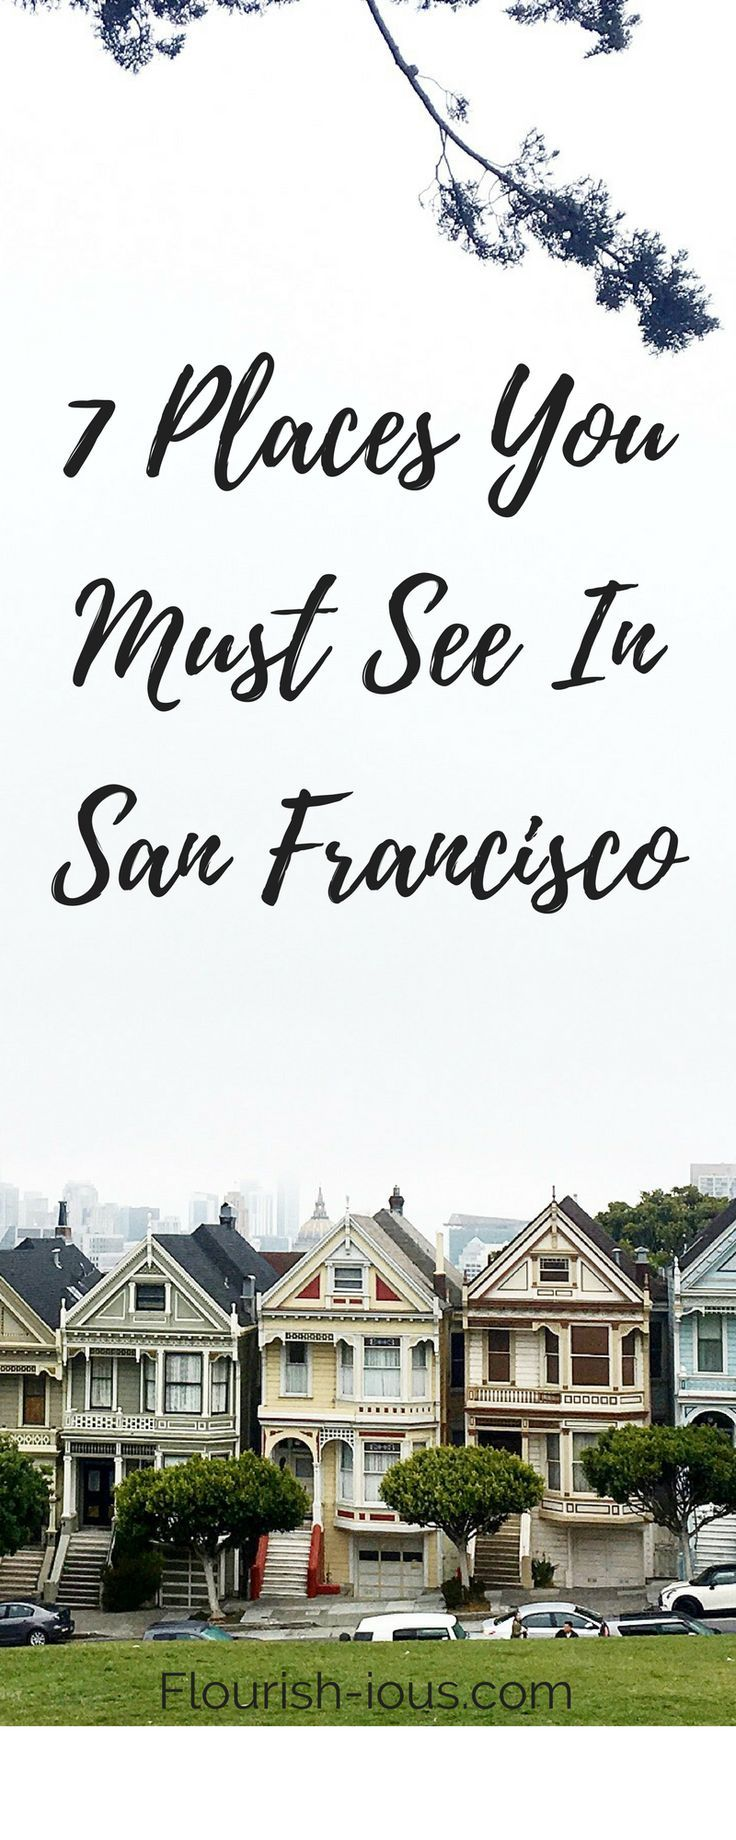 One Day San Francisco Guide Sights Union Square And Lombard Street